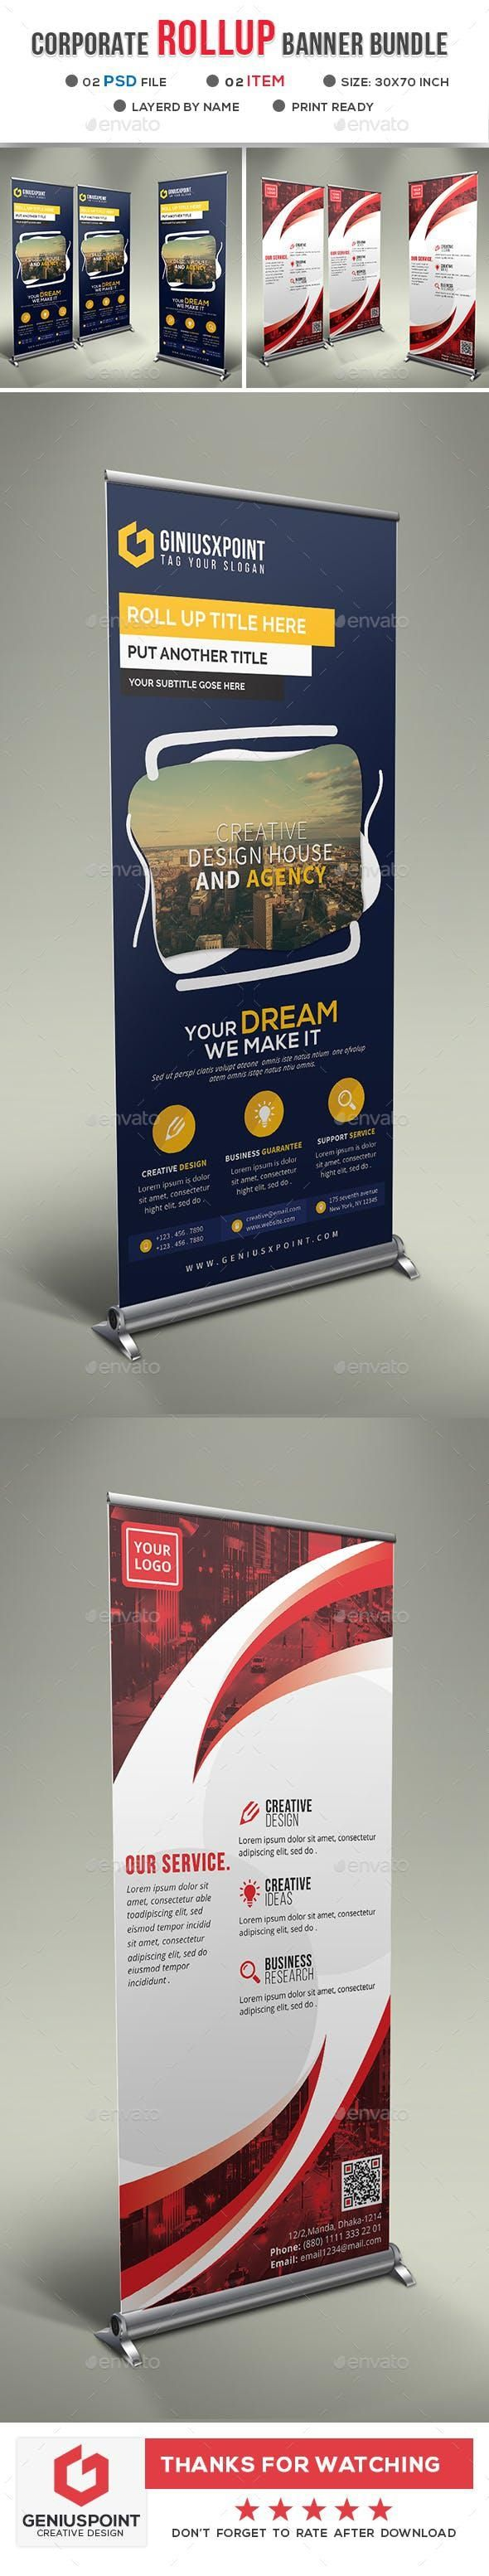 Corporate Roll Up Banner Bundle for $9 #GraphicDesign #SignageDesign #graphicres...